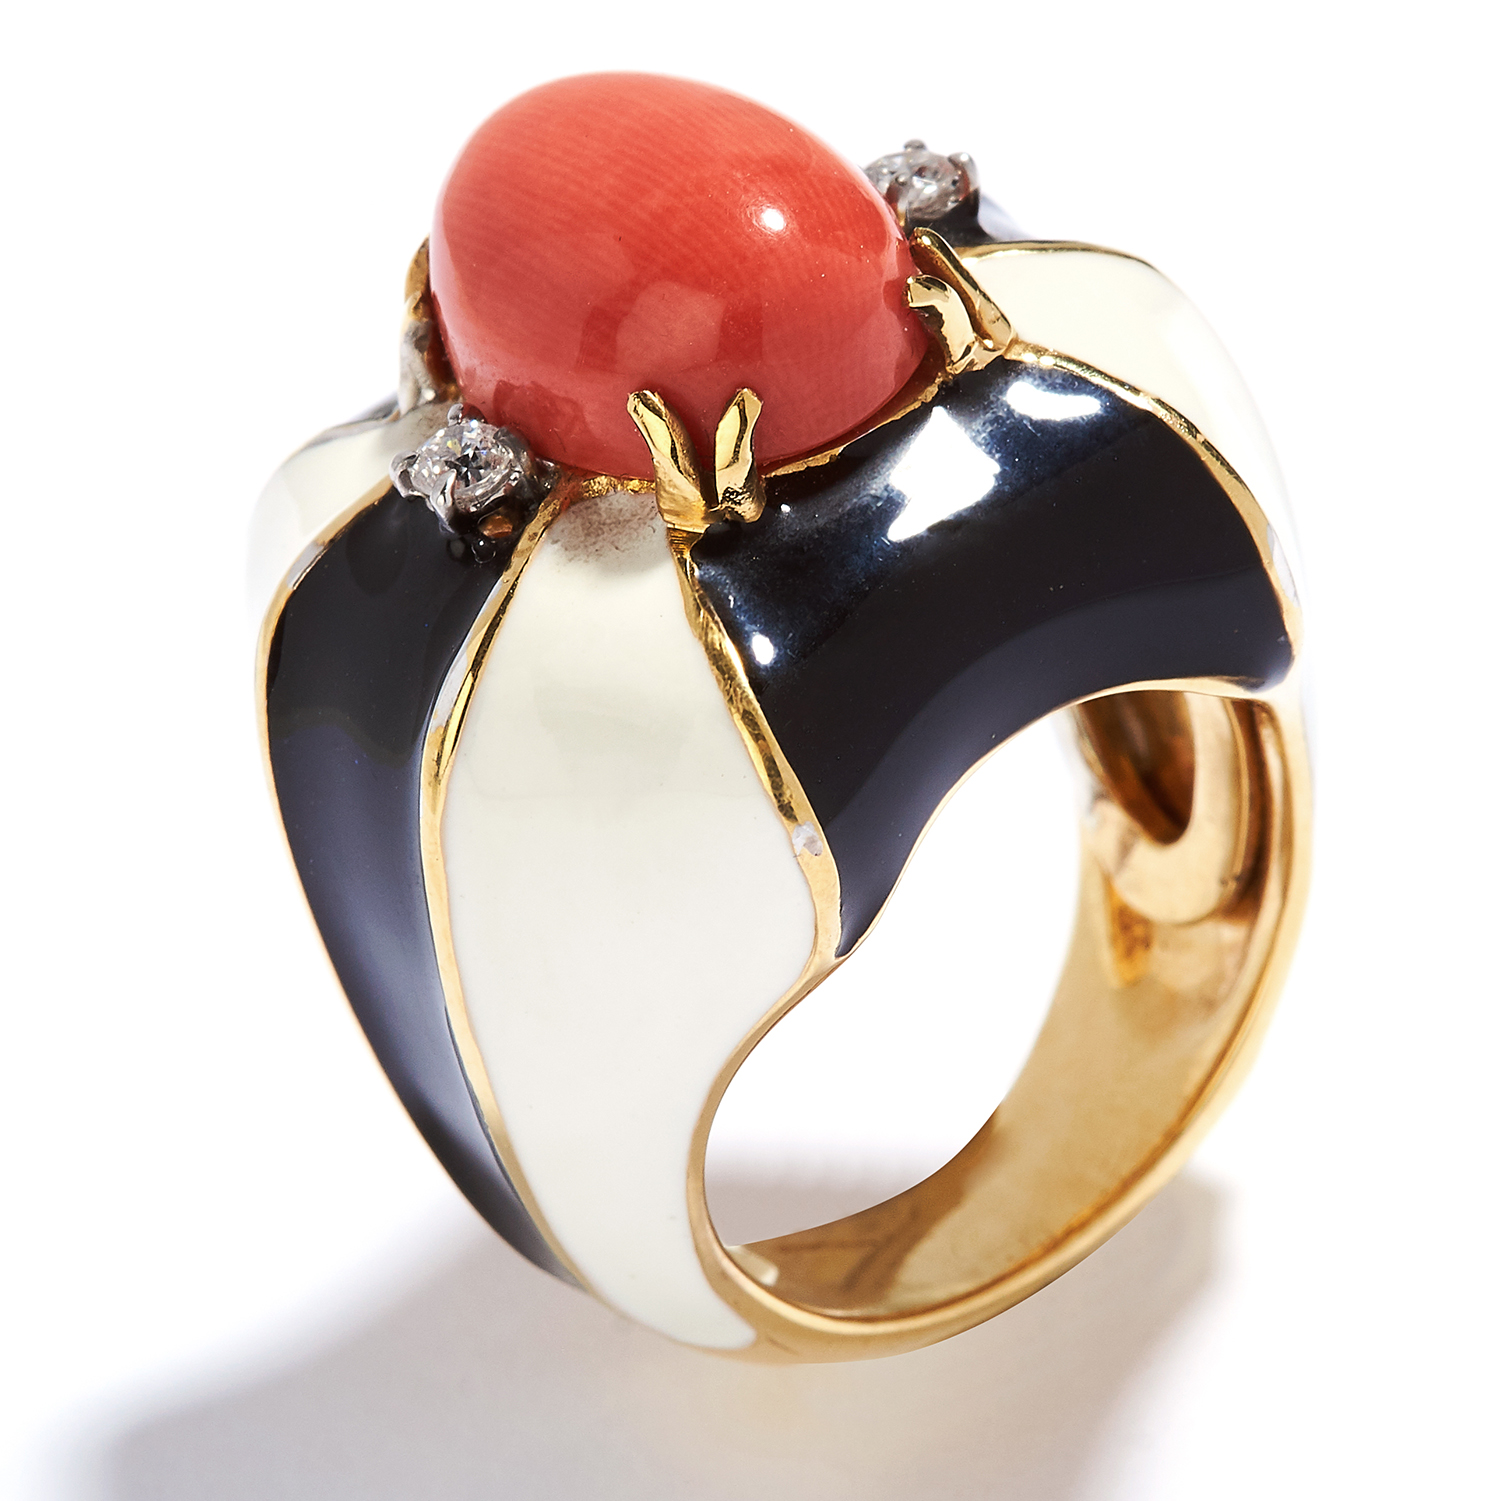 CORAL, DIAMOND AND ENAMEL RING in 18ct yellow gold, the oval coral cabochon within a border of - Bild 2 aus 2